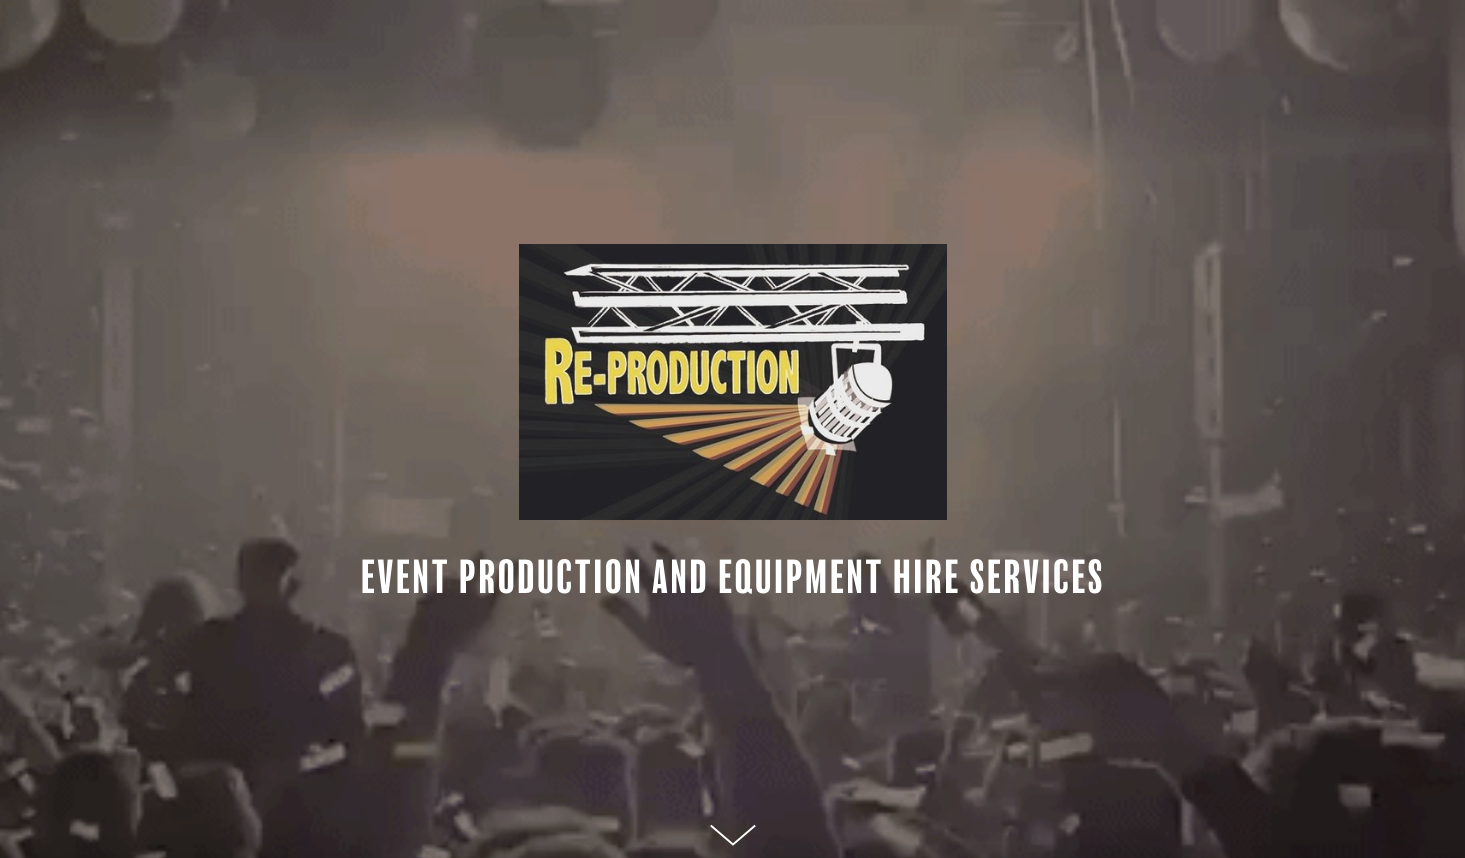 rE-pRODUCTION.cO.uK - One Page Website for Event Production and Equipment Hire Services with Video Background